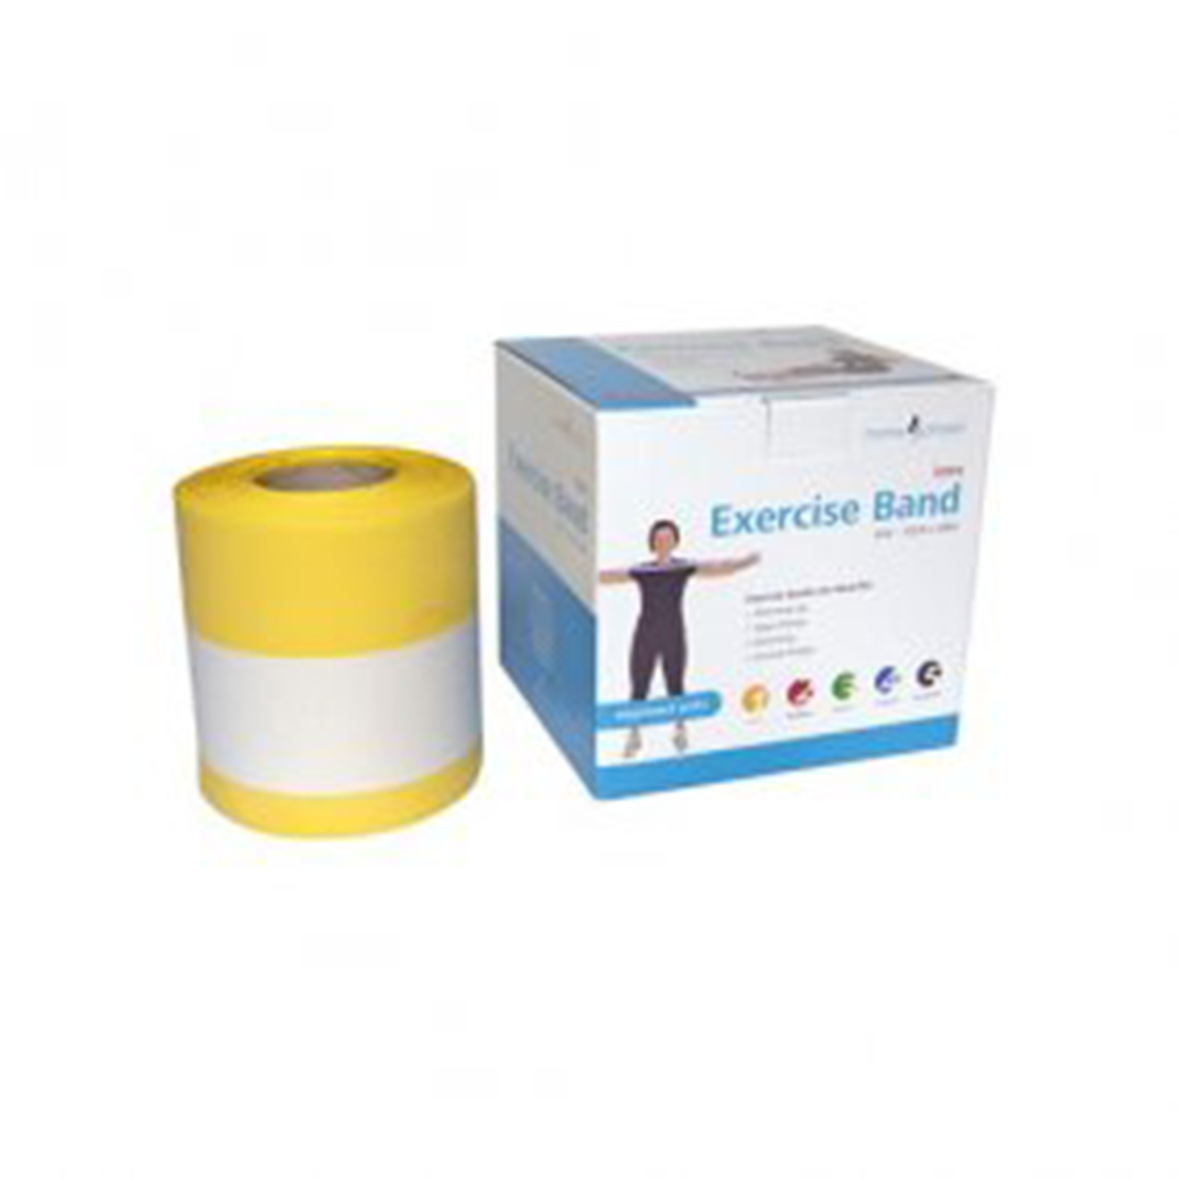 Exercise Band Light Strength yellow